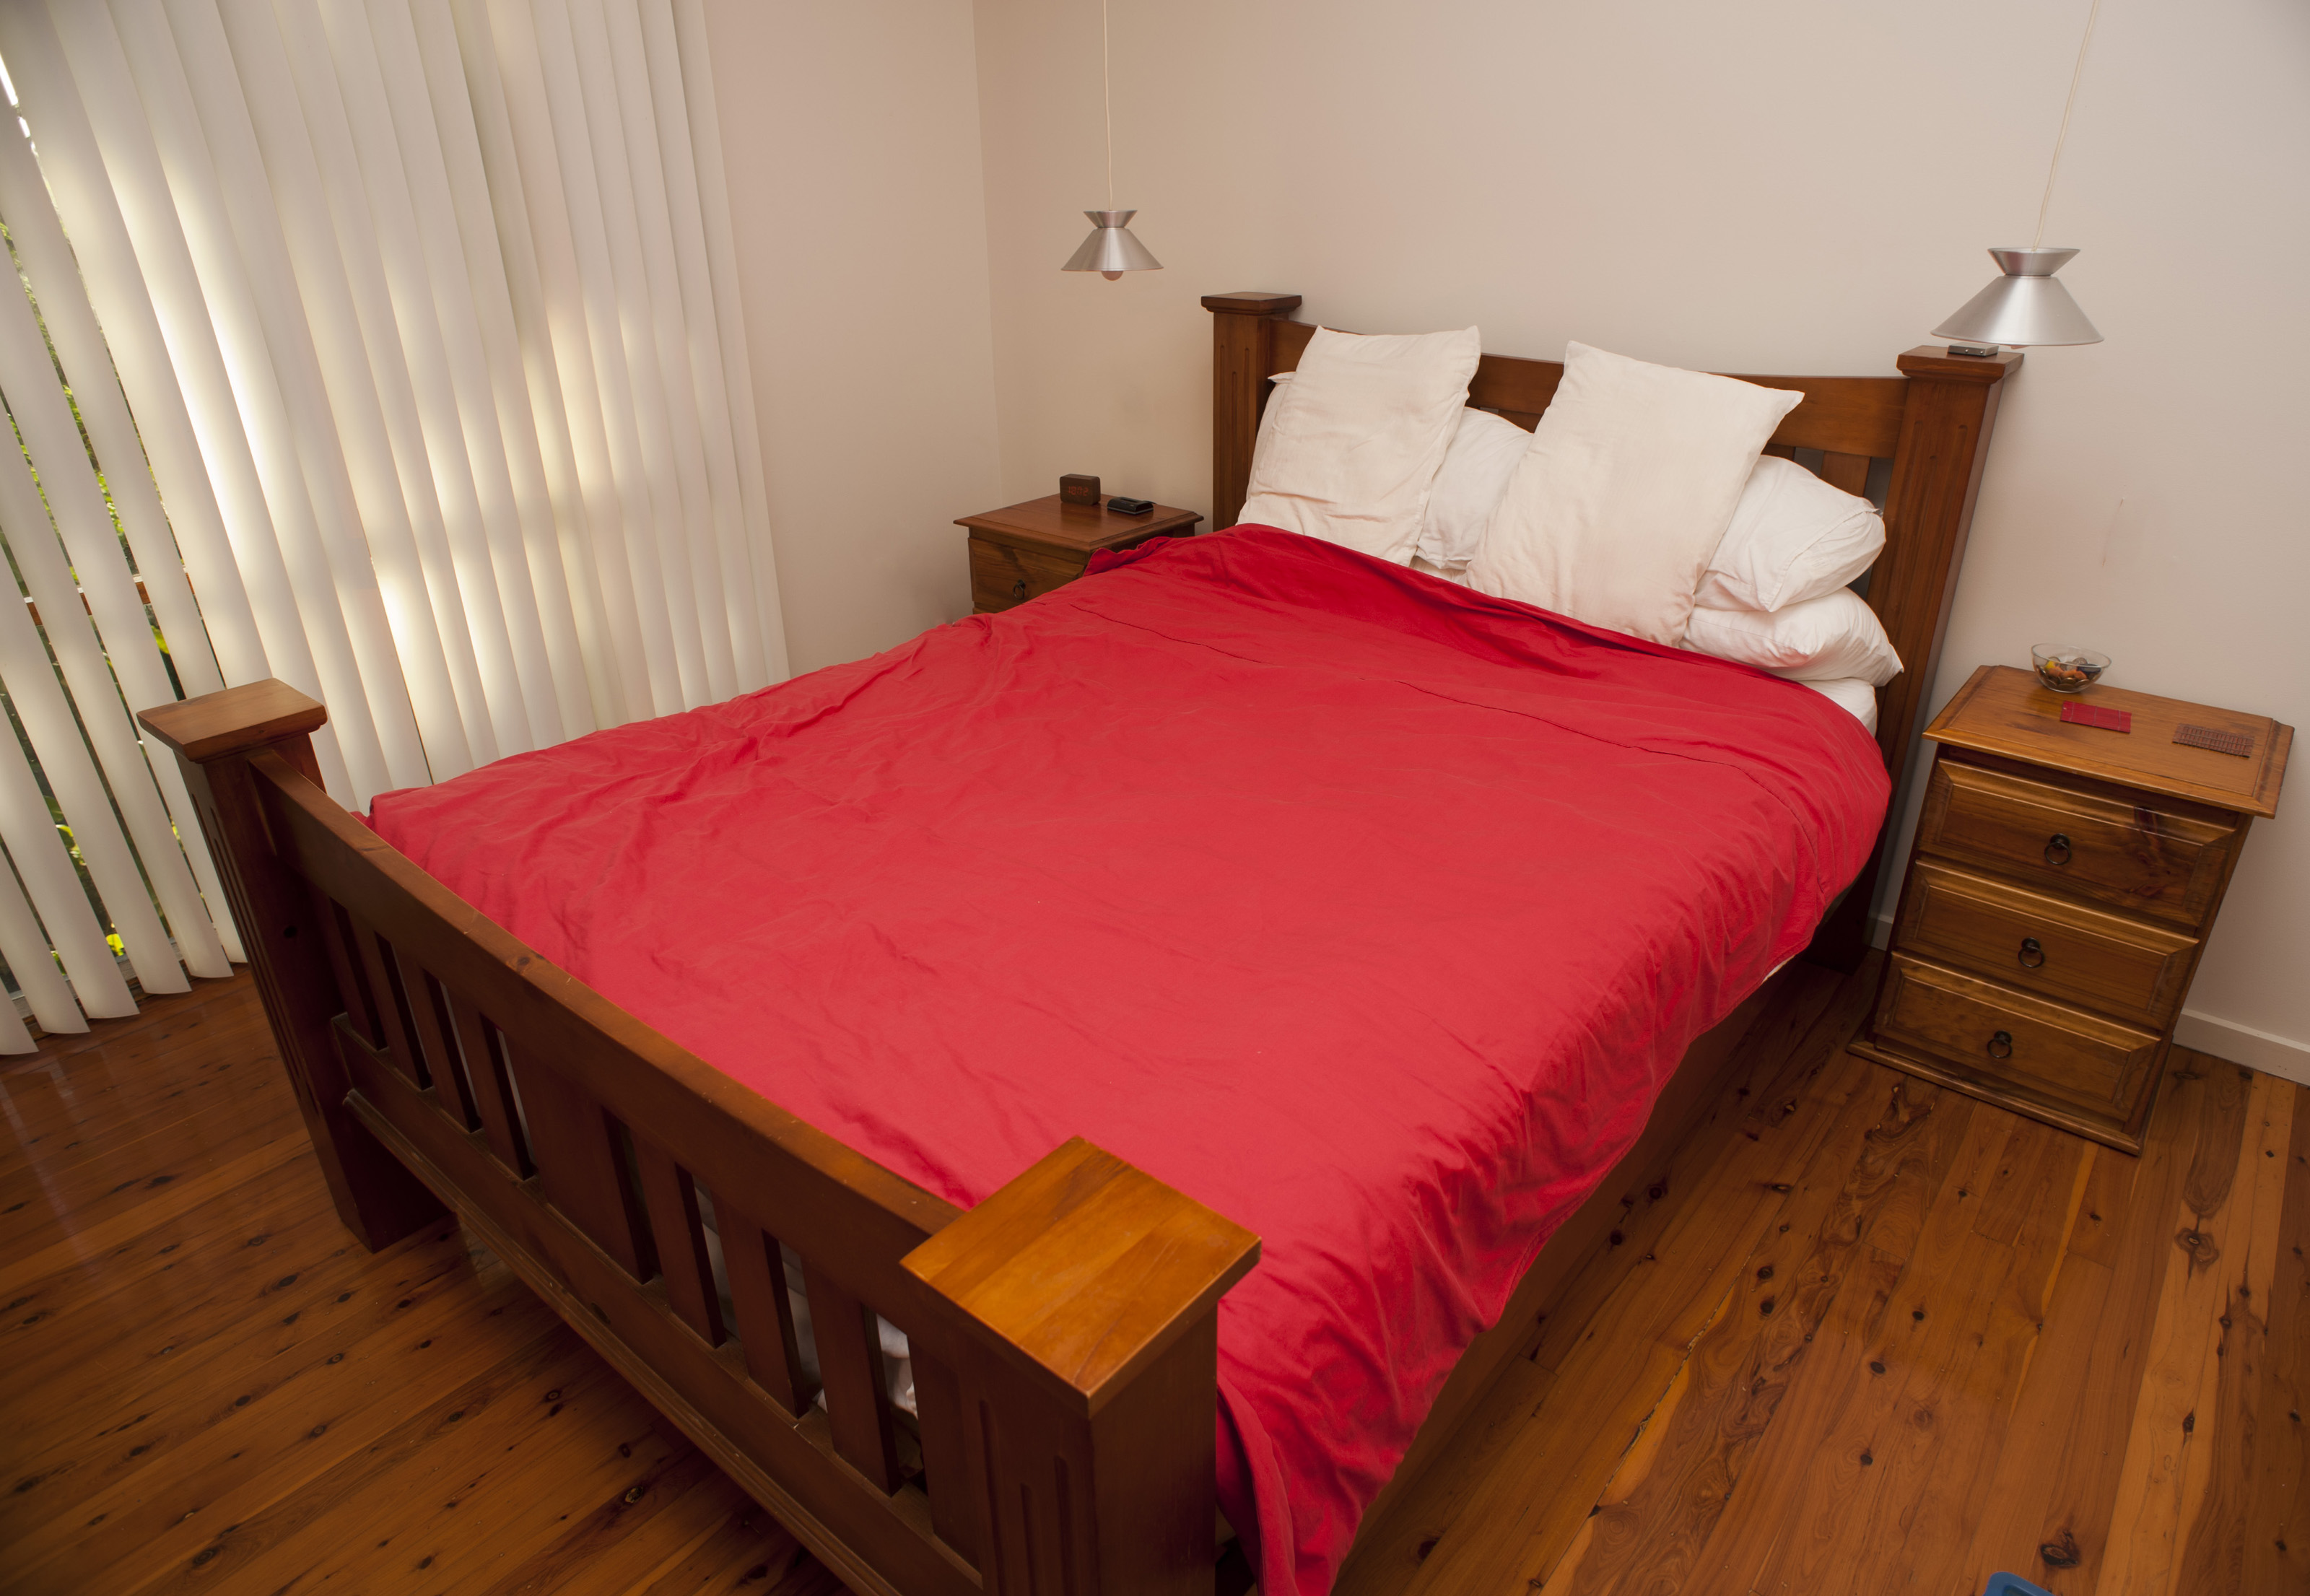 Free Stock Old Fashioned Wooden Bed Freeimageslive